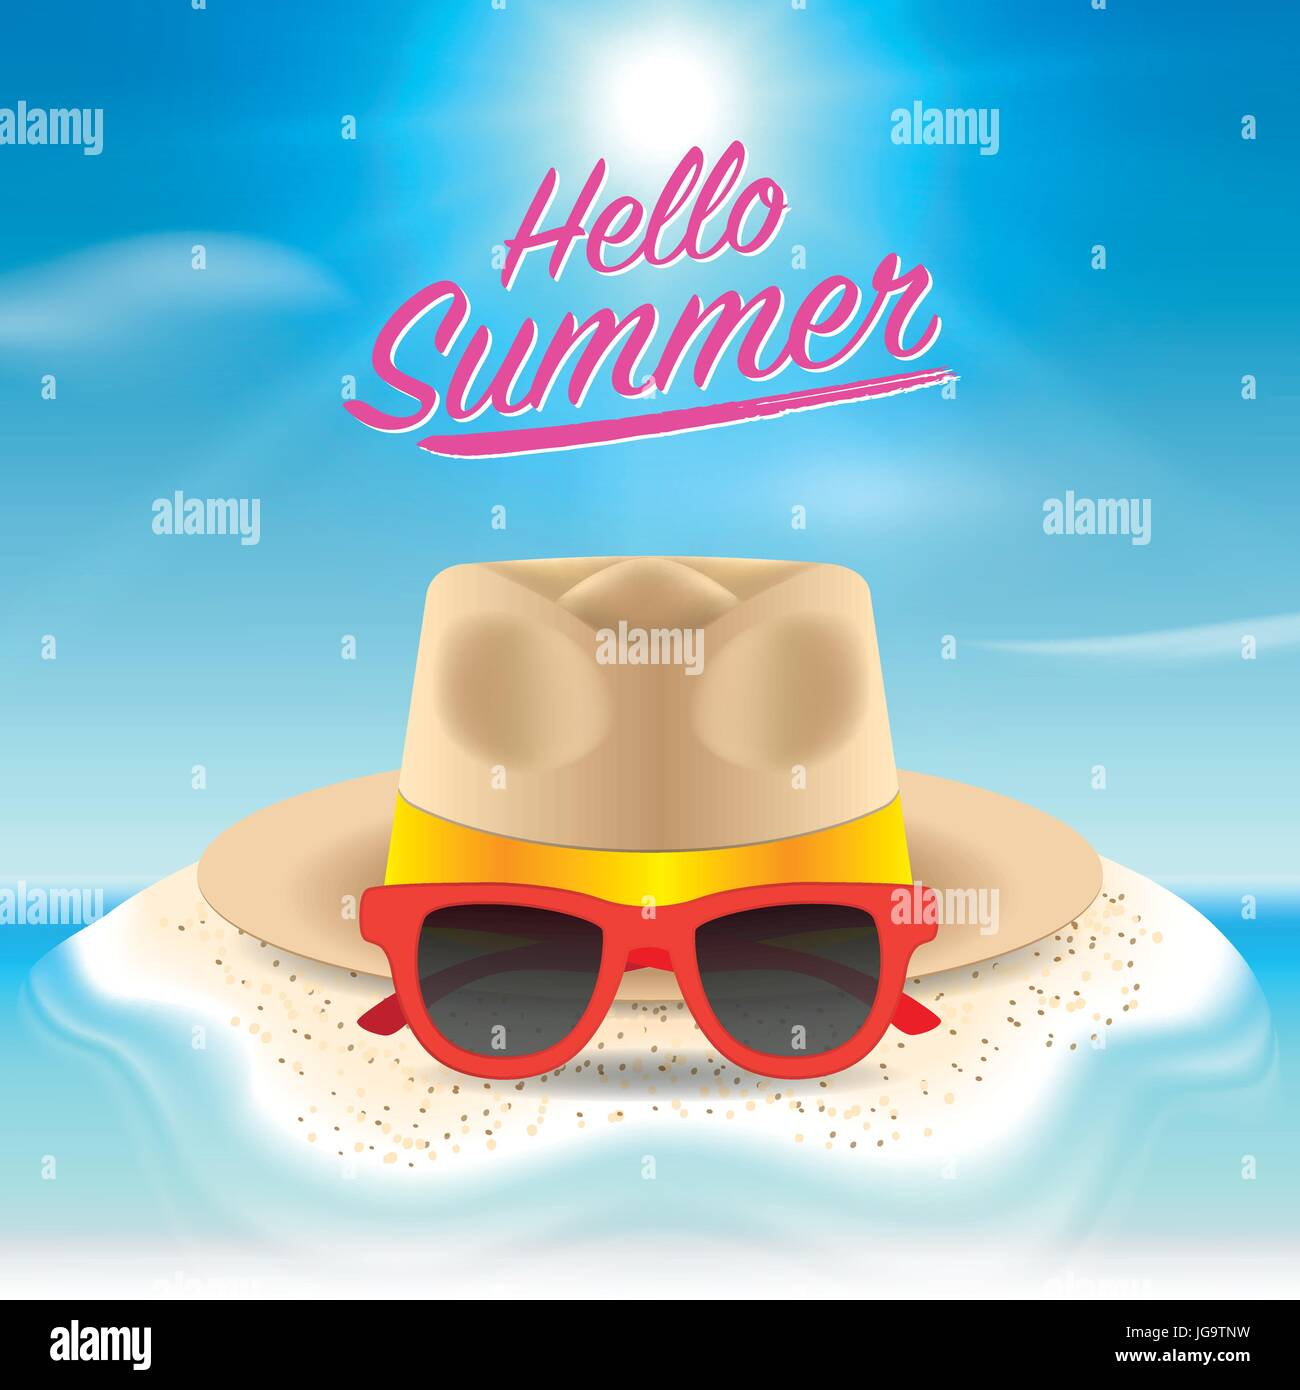 Exceptionnel Hello Summer Background. Beach Island Background With Sunglasses And Straw  Hat. Design For Poster, Voucher Discount, Invitation Card, Backdrop